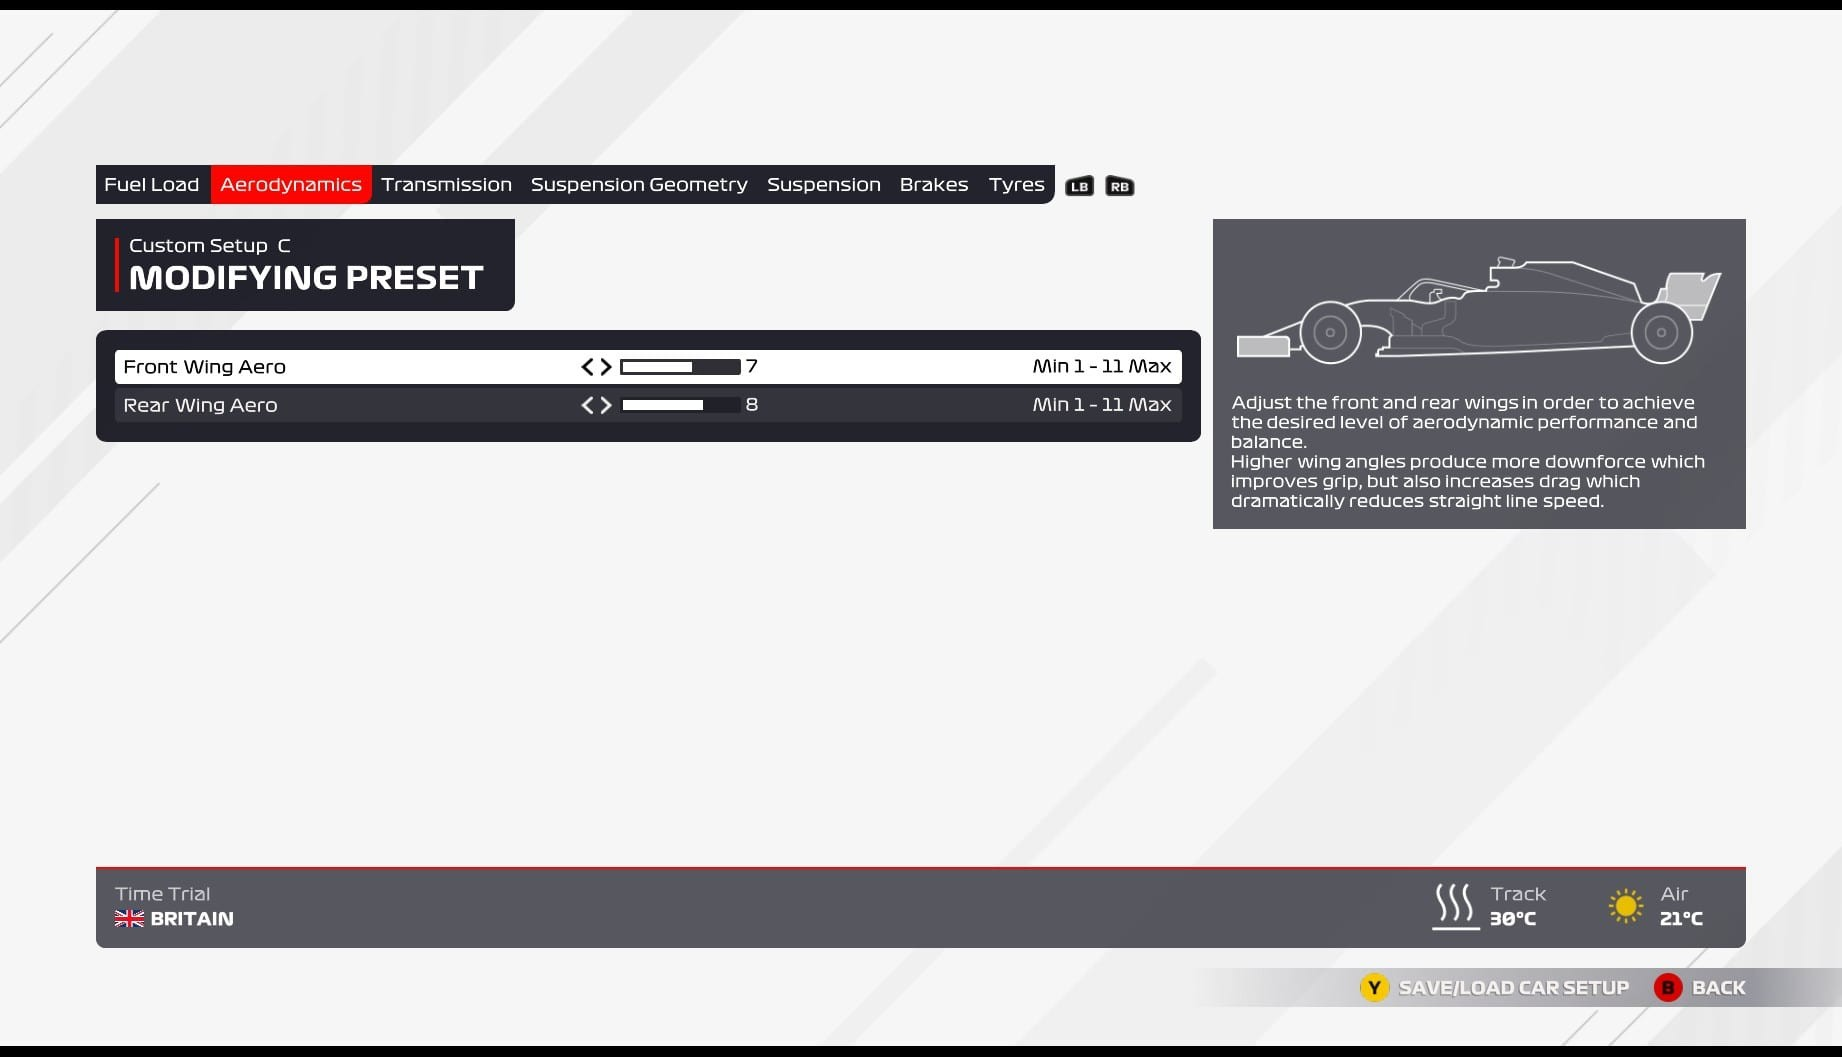 An image of the aerodynamics page of the F1 2021 car setup screen.